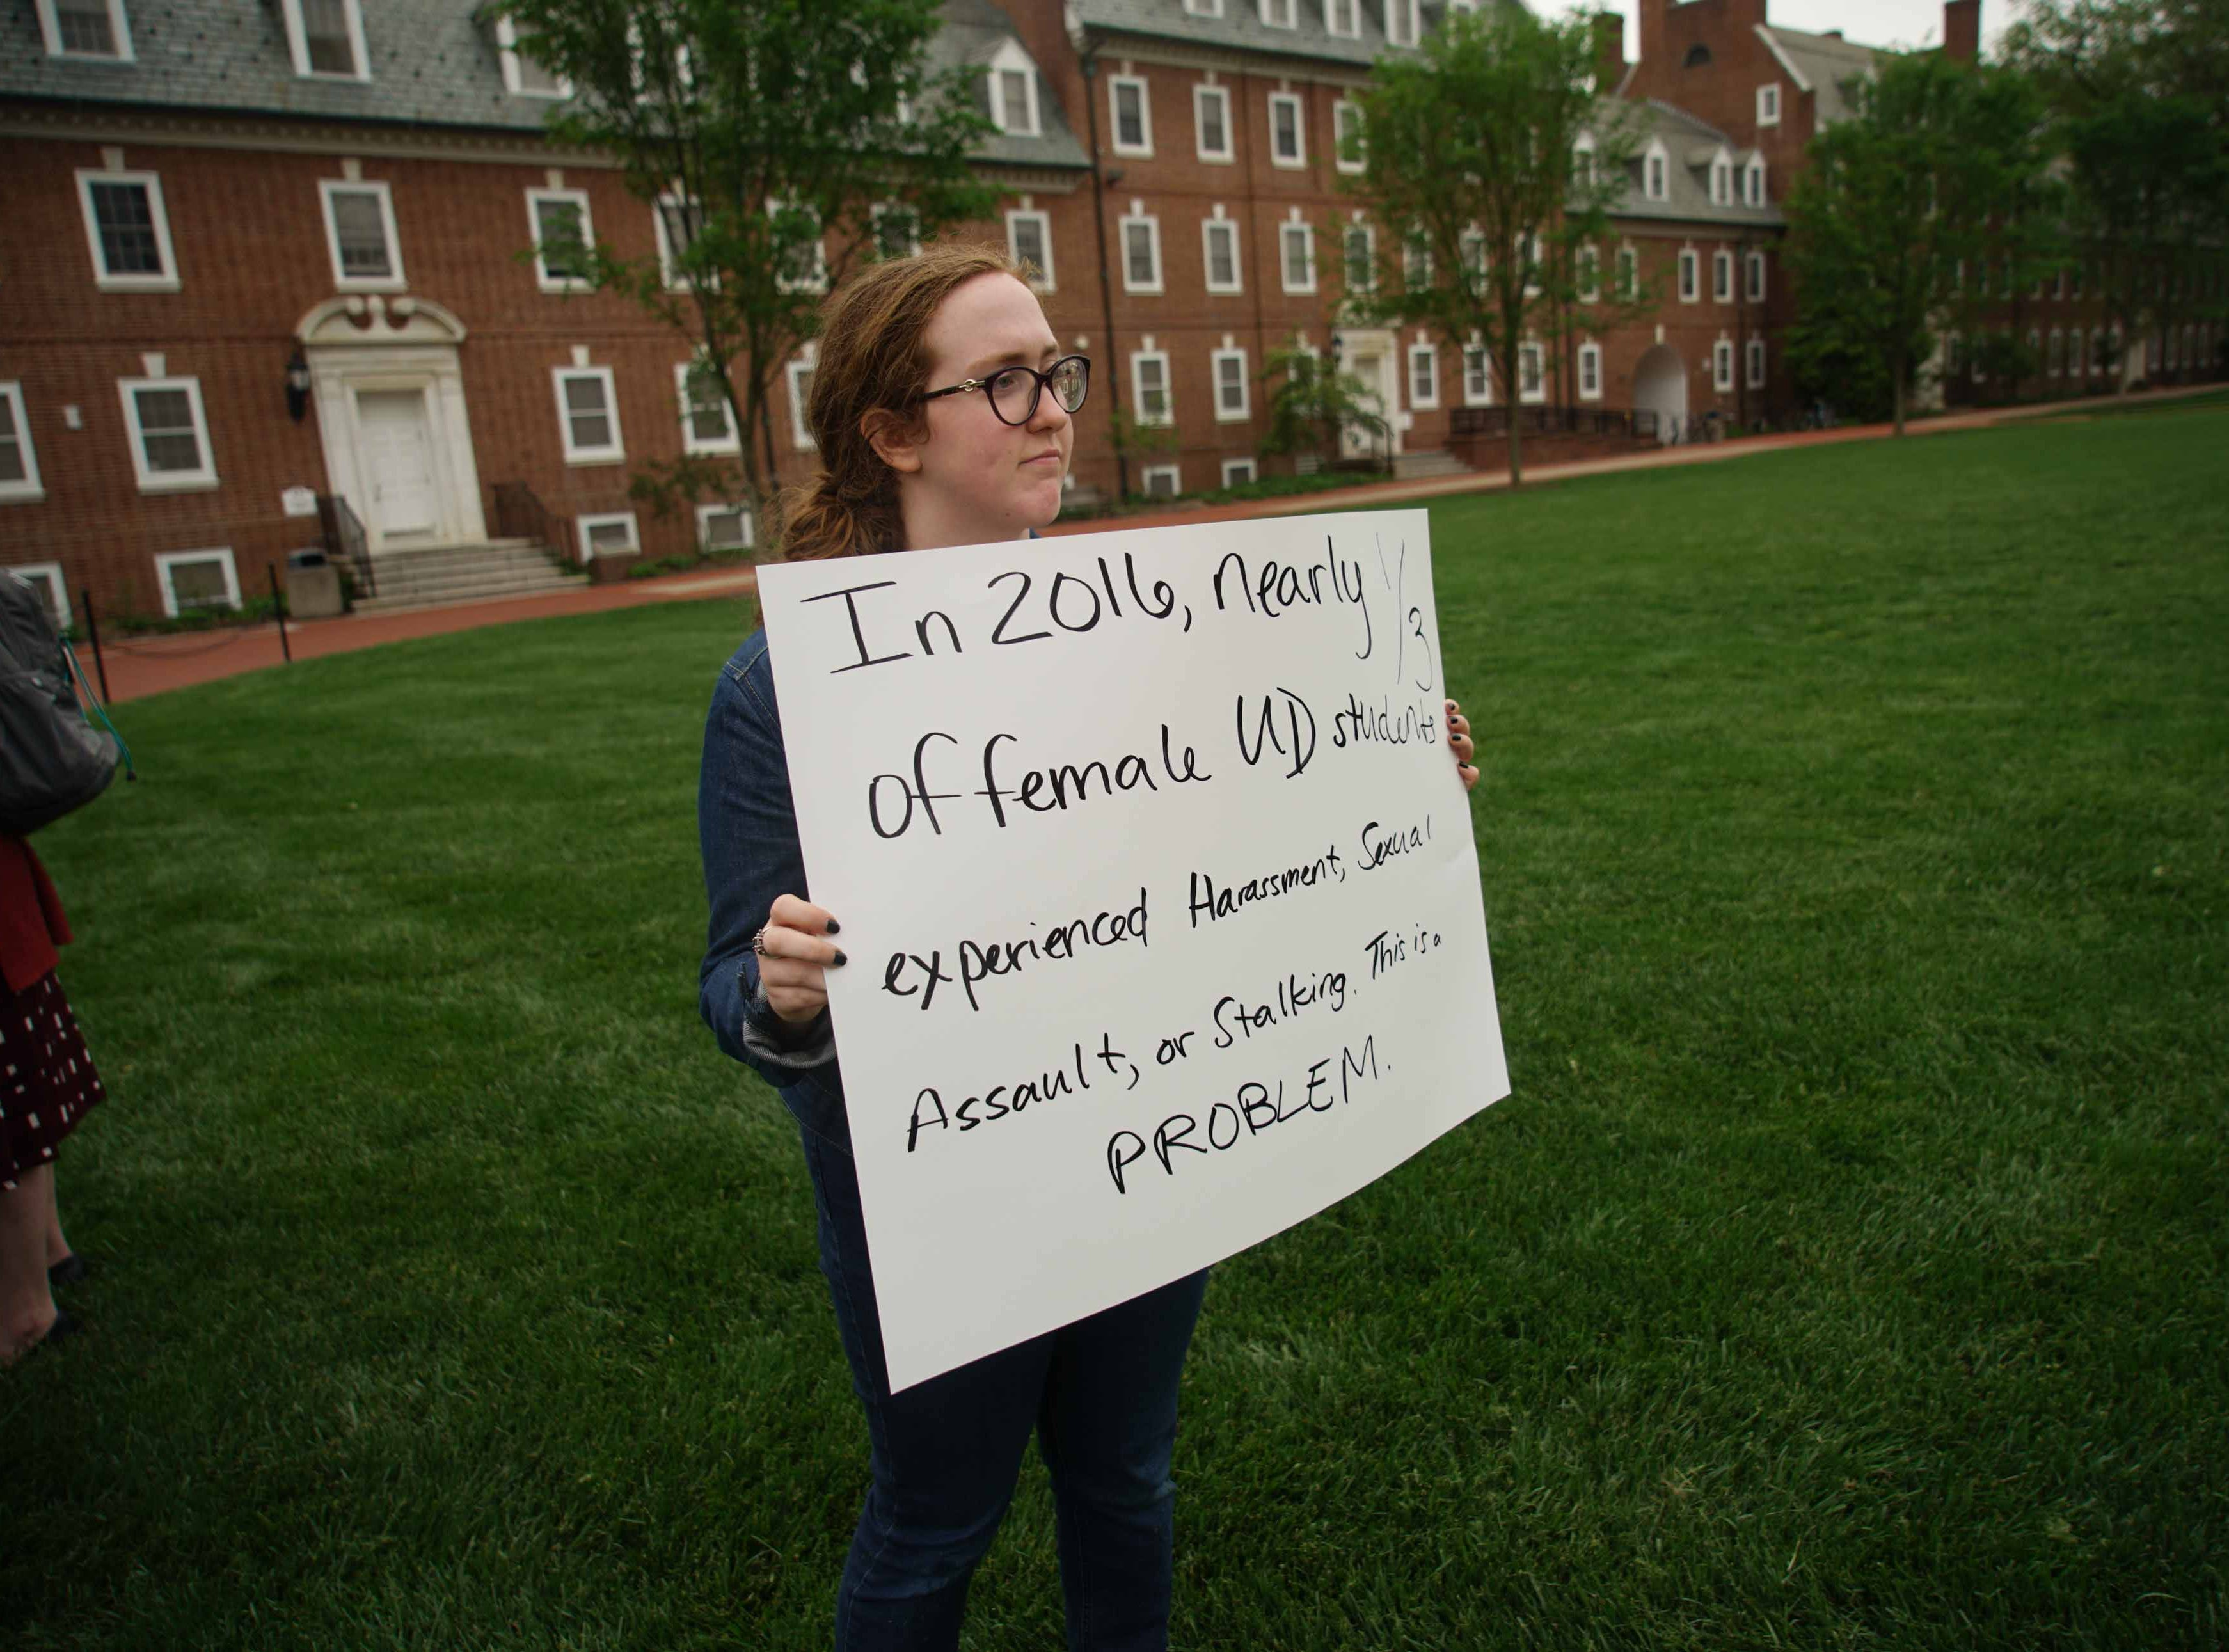 Kylie Boggs, 19, a friend of Alyvia Pauzer, both sophomores at the University of Delaware, gather with fellow students and some faculty on the university's Green Wednesday afternoon for a silent protest to bring attention to state prosecutors decision not to file charges Pauzer's sexual assault case.